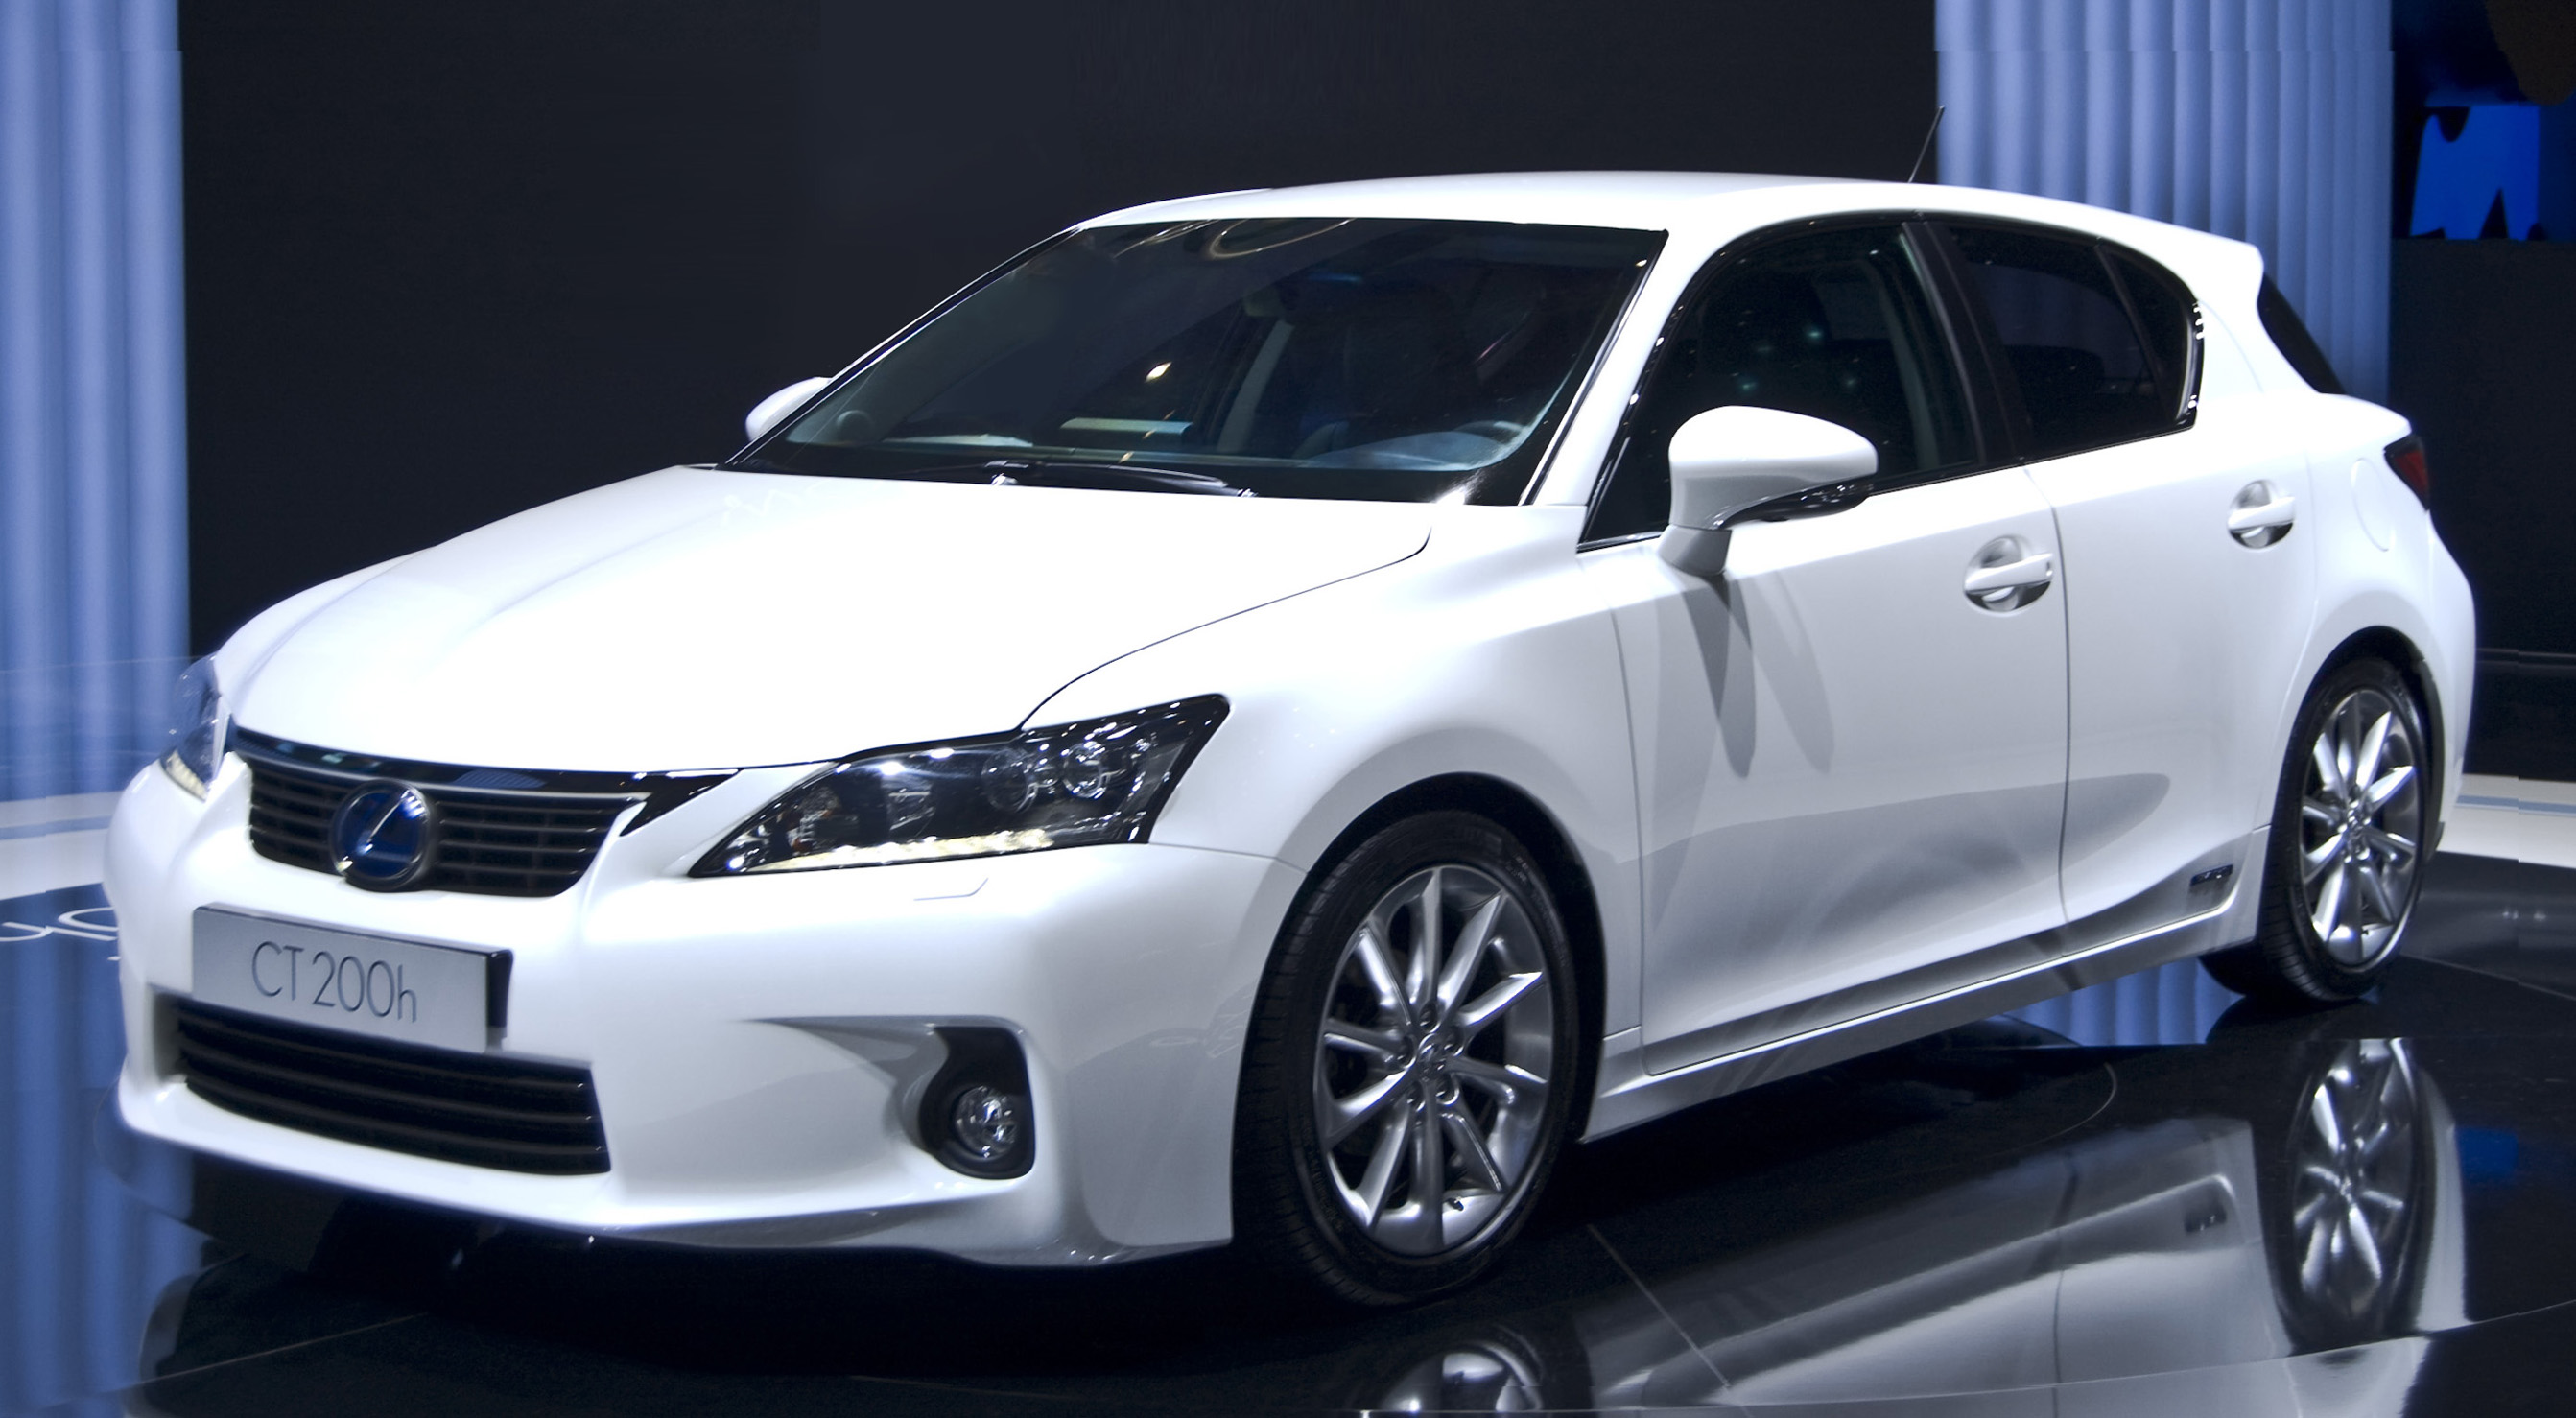 Lexus Cars in Pakistan Prices Reviews & More